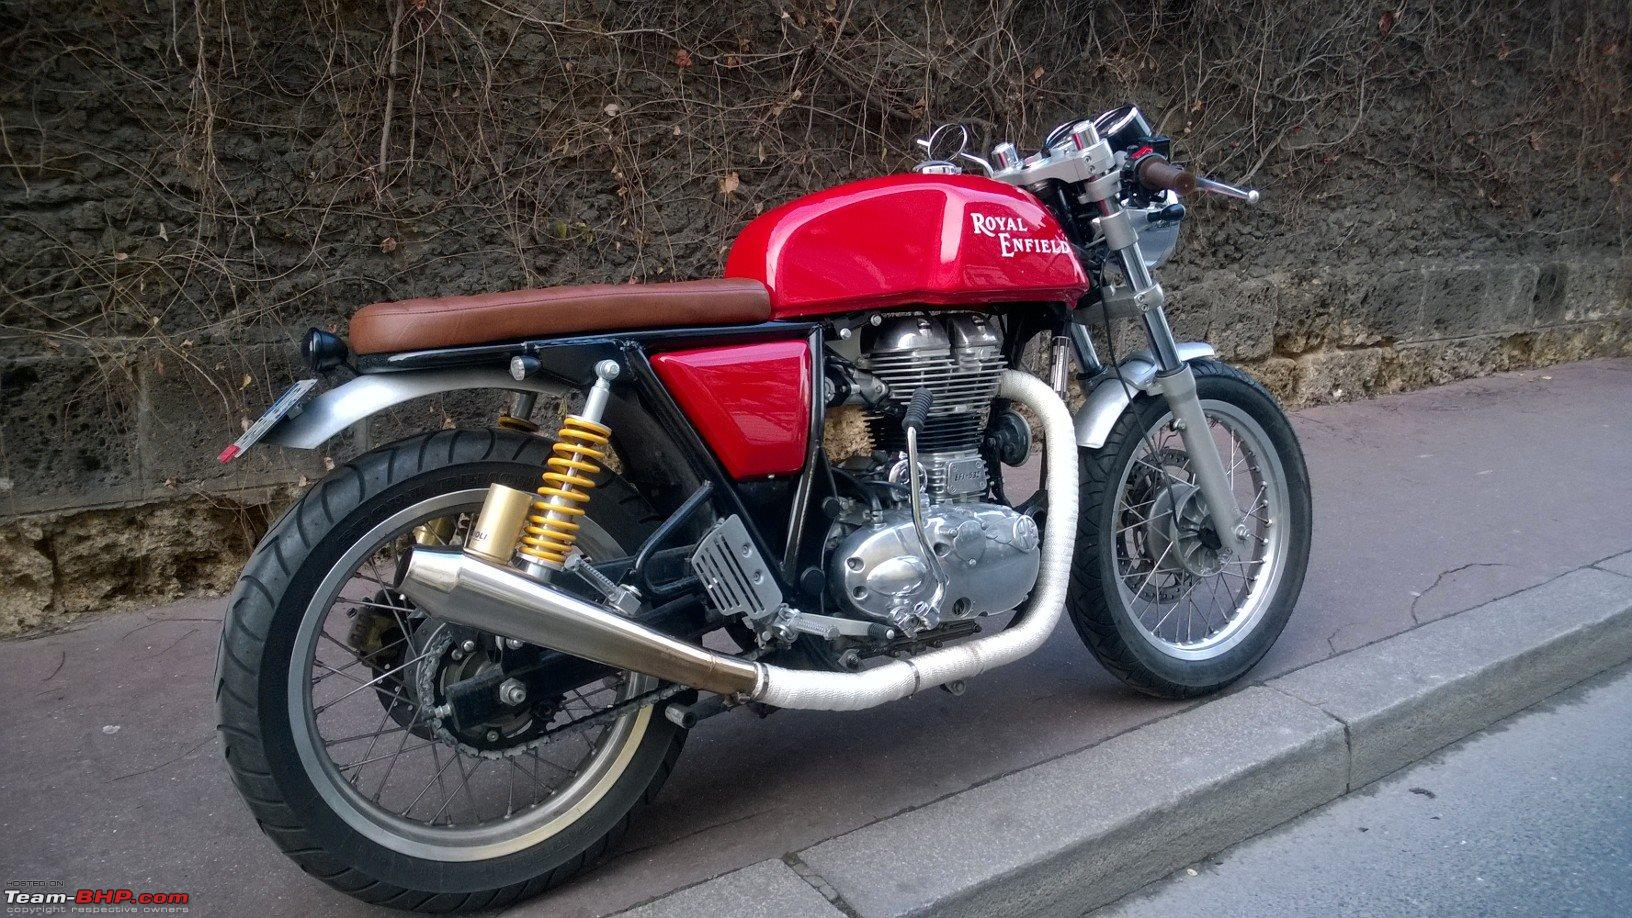 Sitting position could be better | - ROYAL ENFIELD CONTINENTAL GT